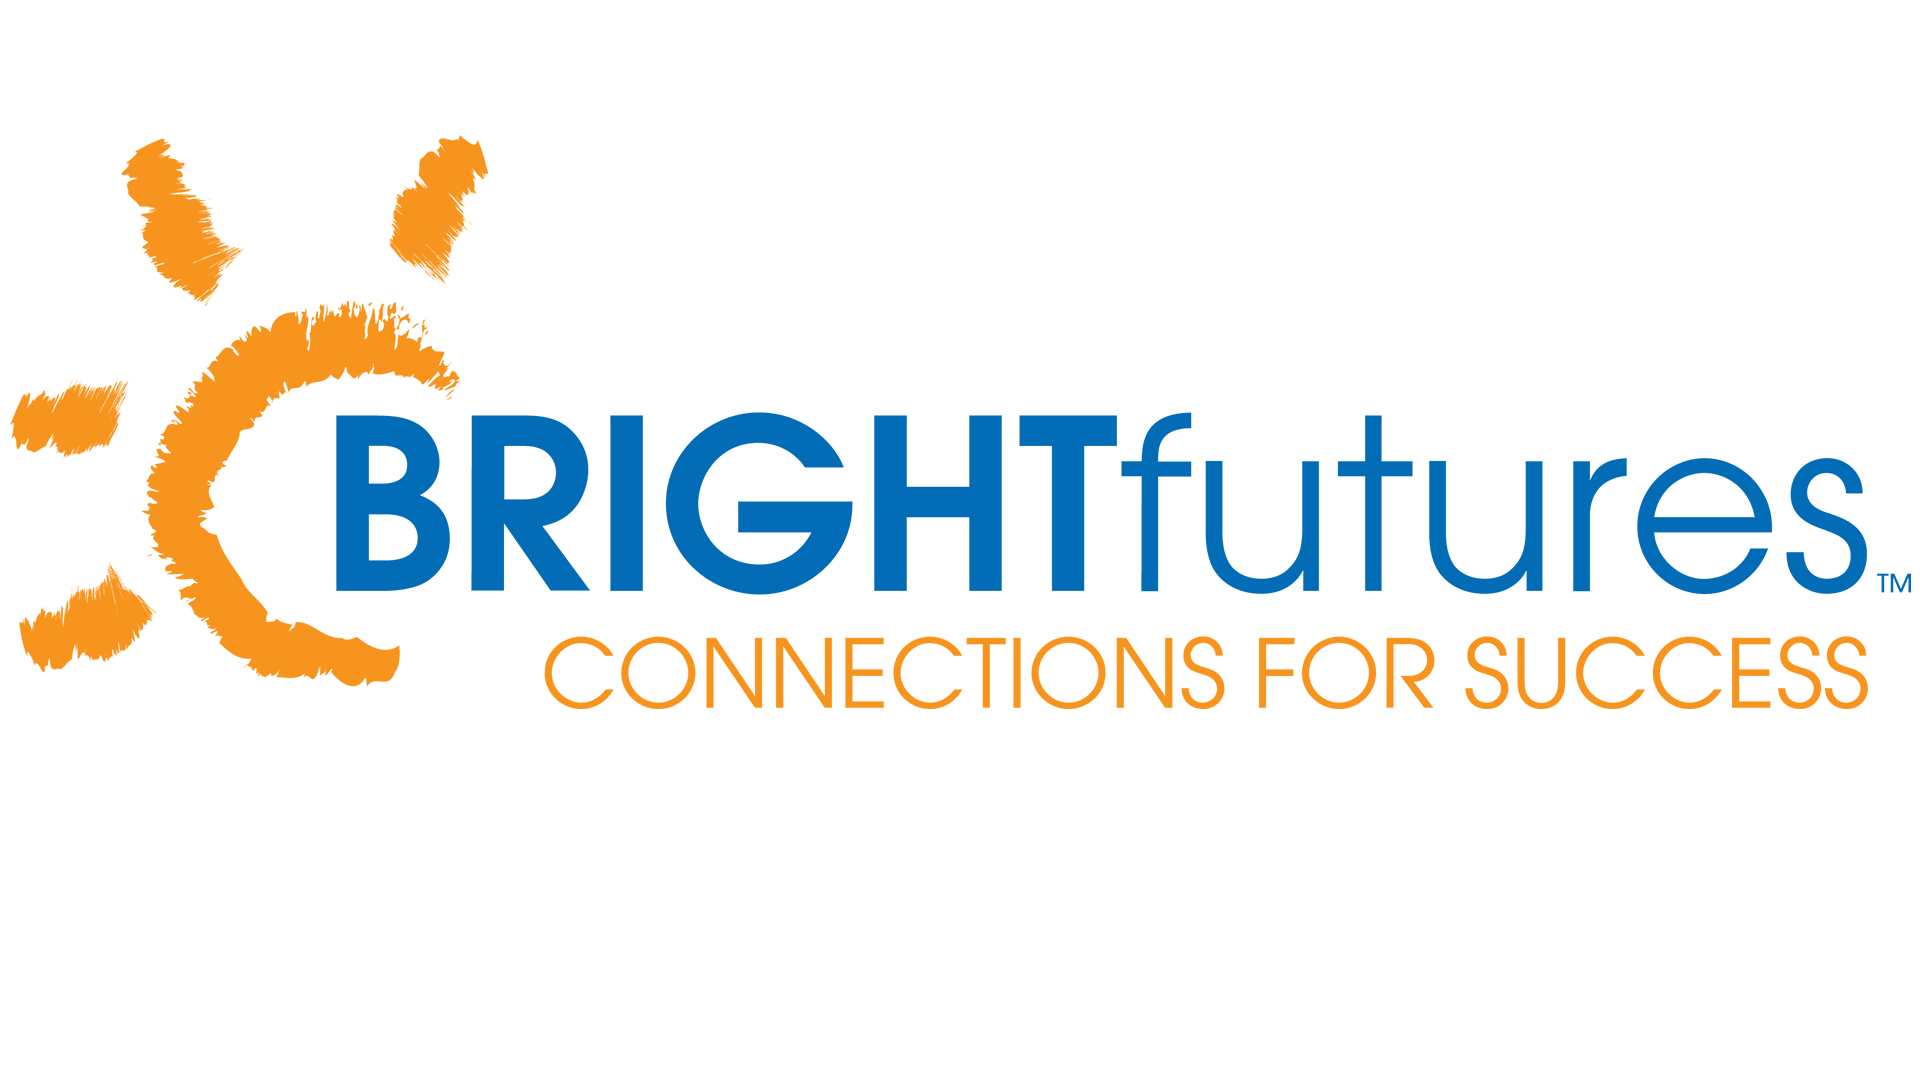 Bright Futures - Bright Futures USA is a non-profit organization dedicated to bringing communities together to focus on the success of children.